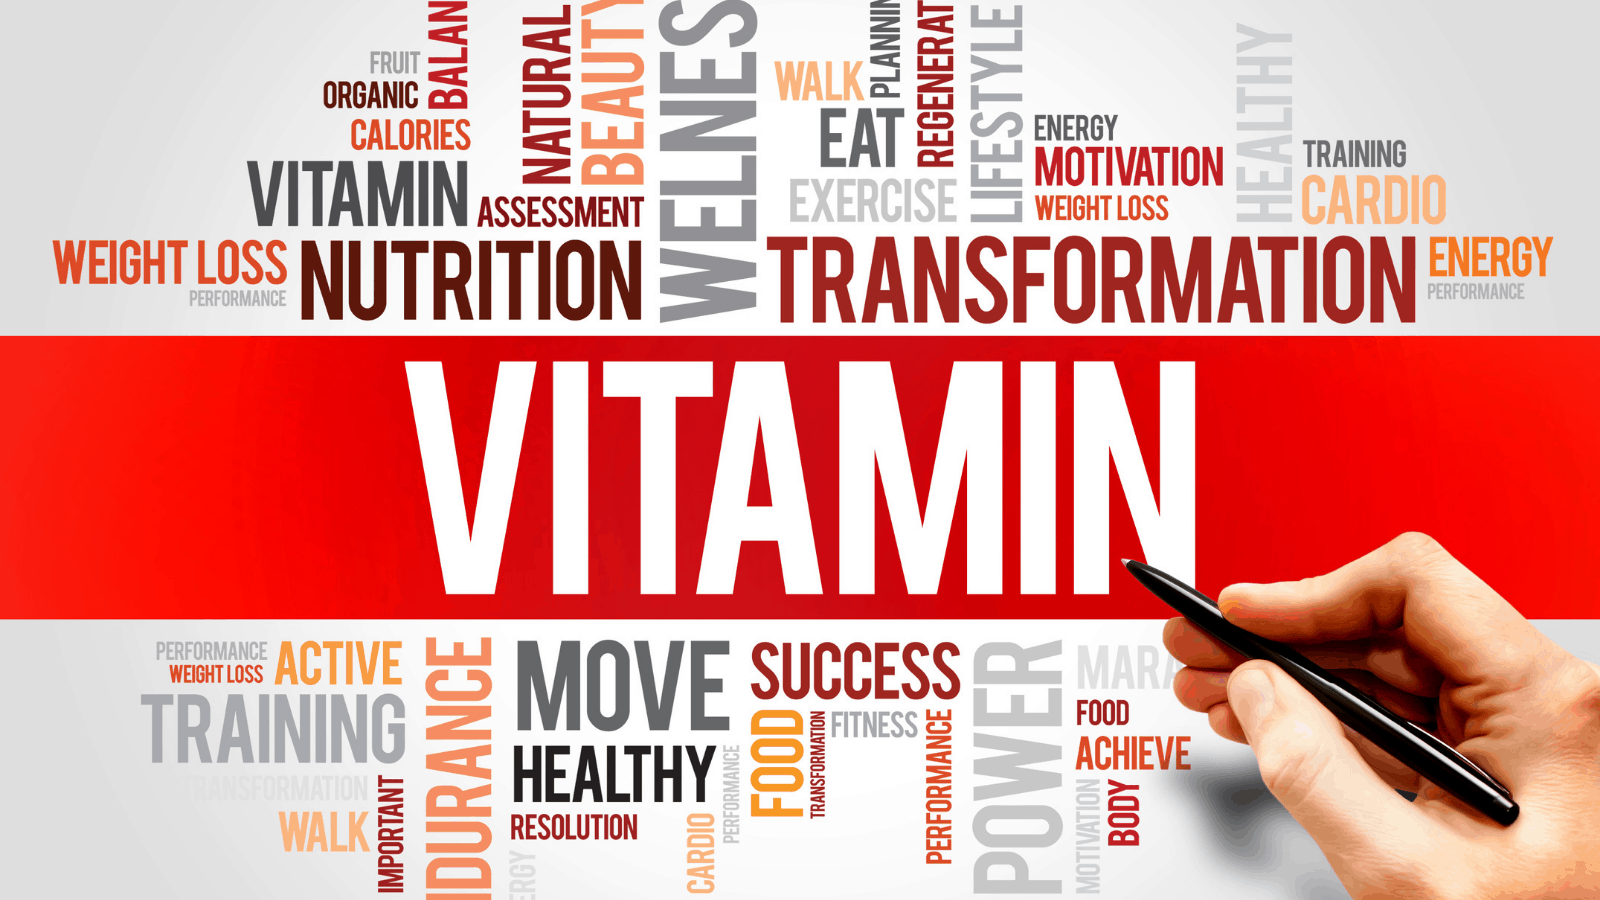 How To Choose The Best Vitamins For Teens